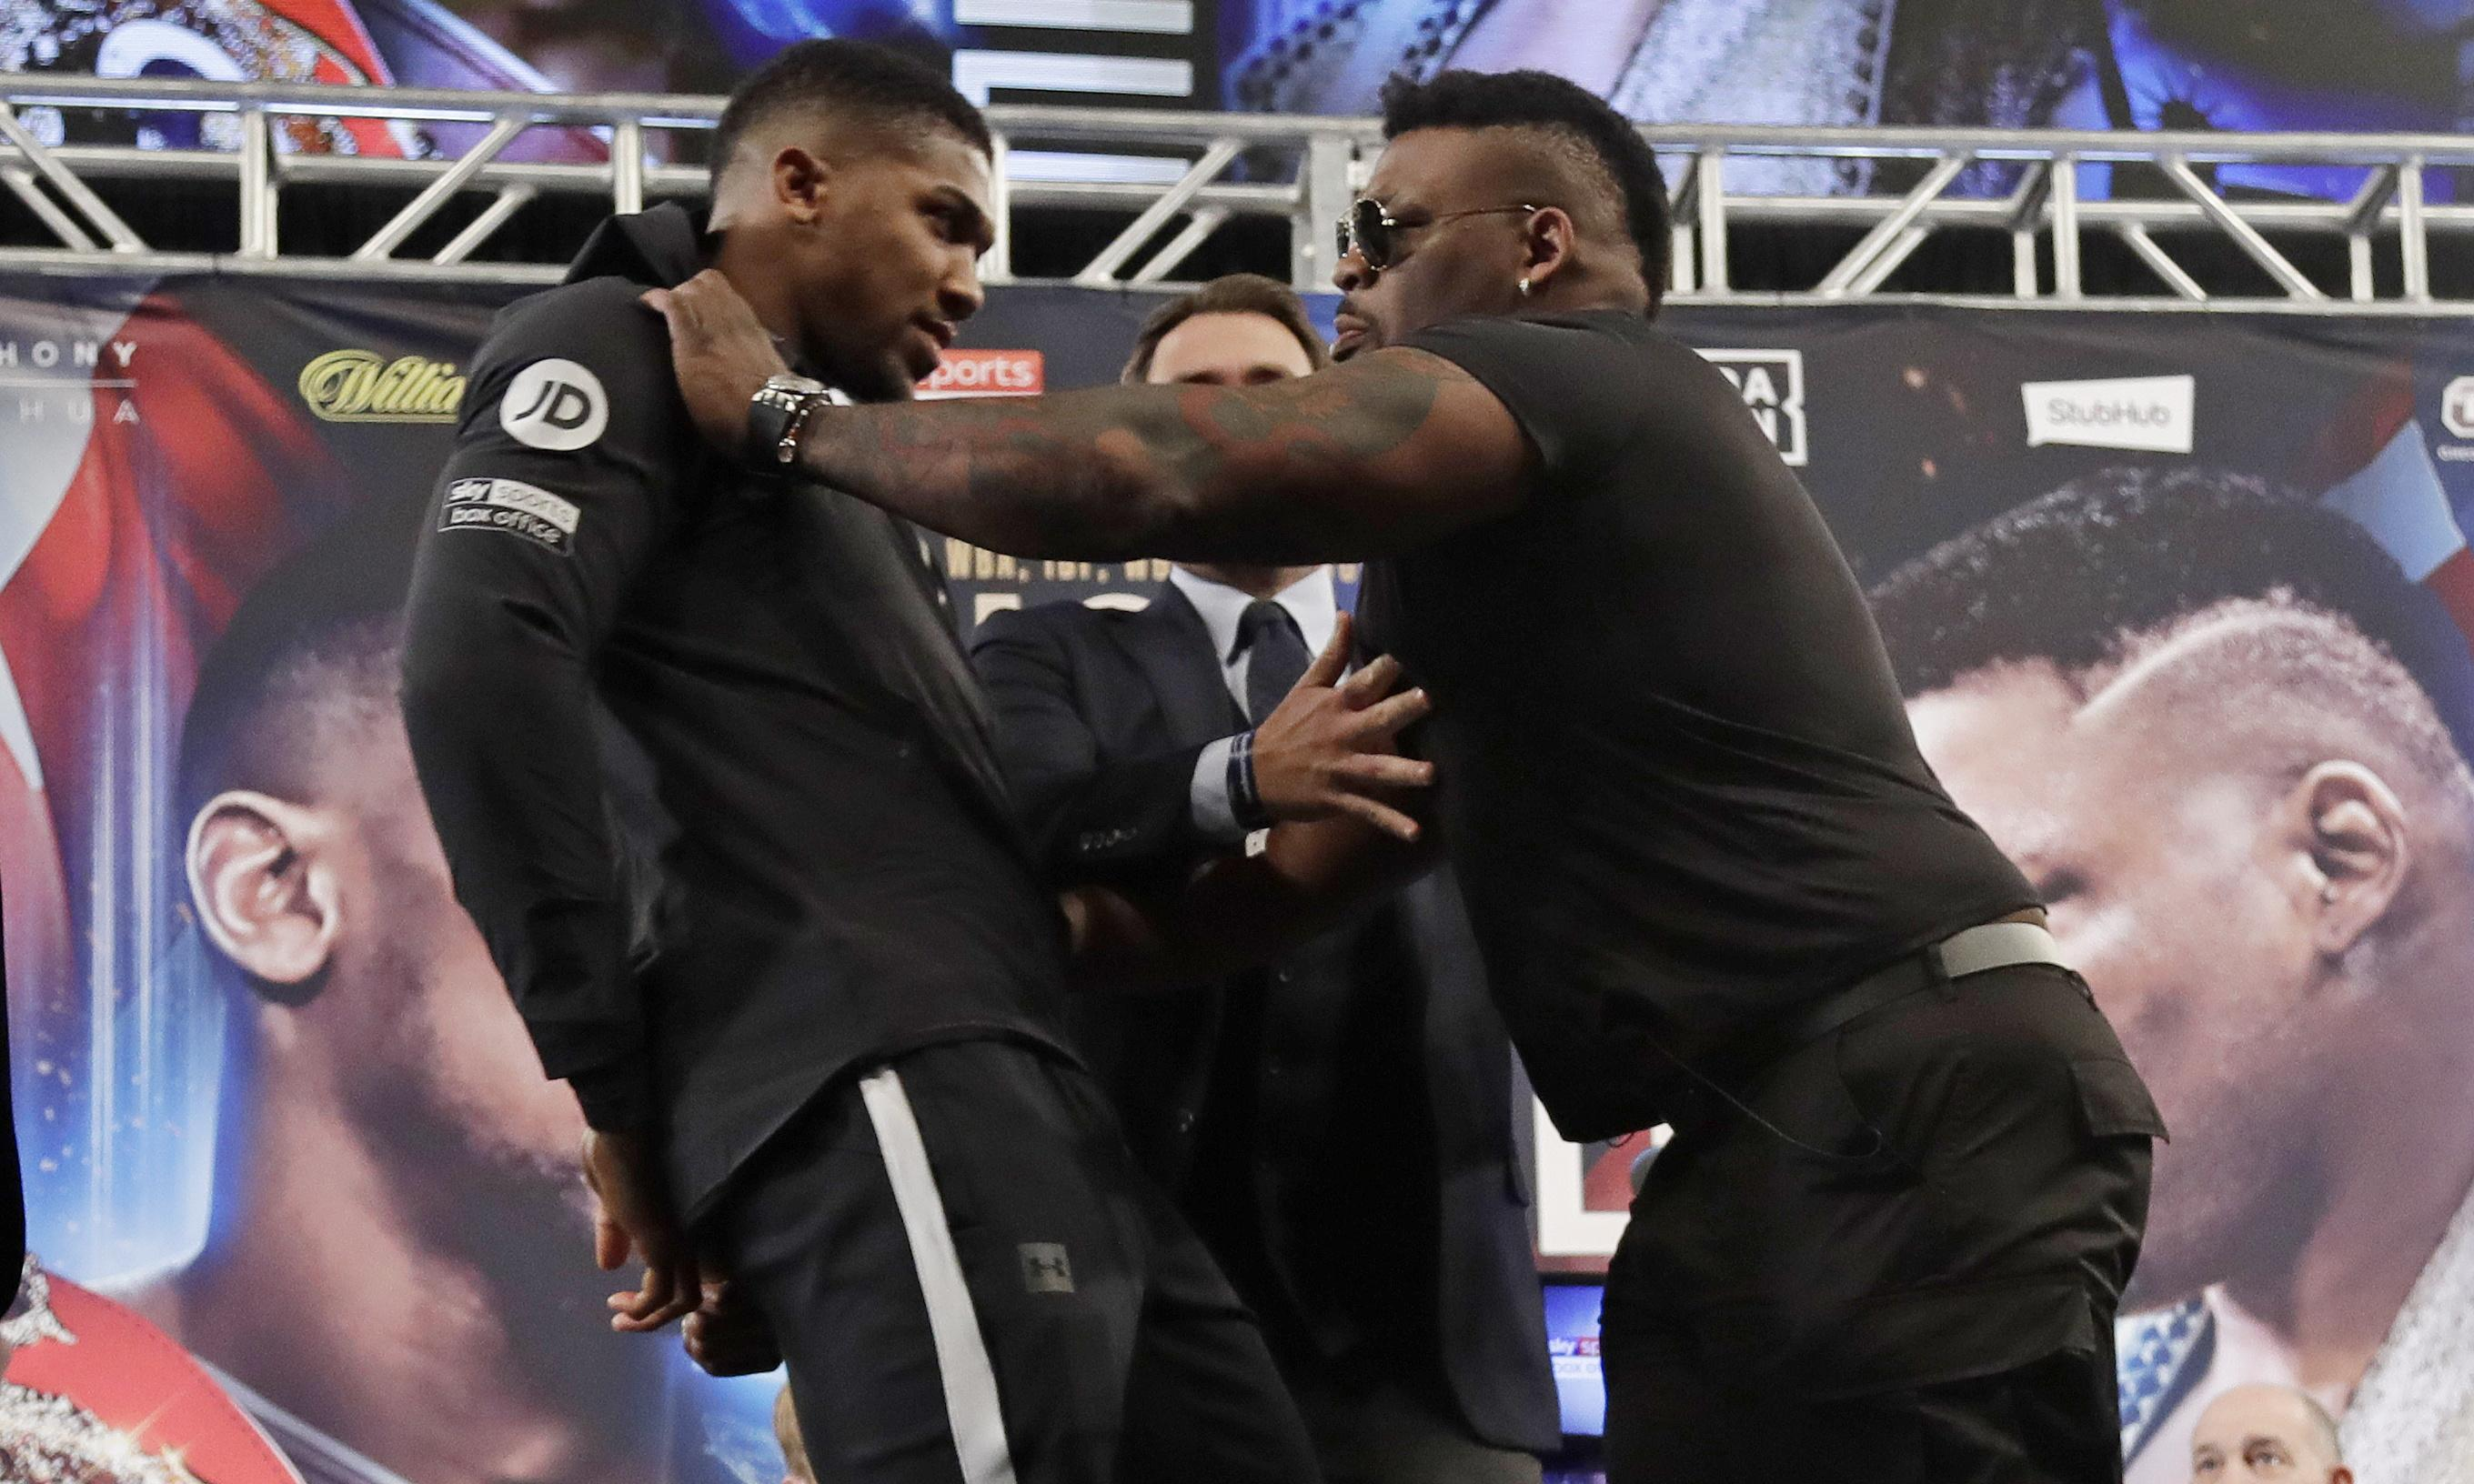 Jarrell Miller can't beat me even on his best day, says Anthony Joshua